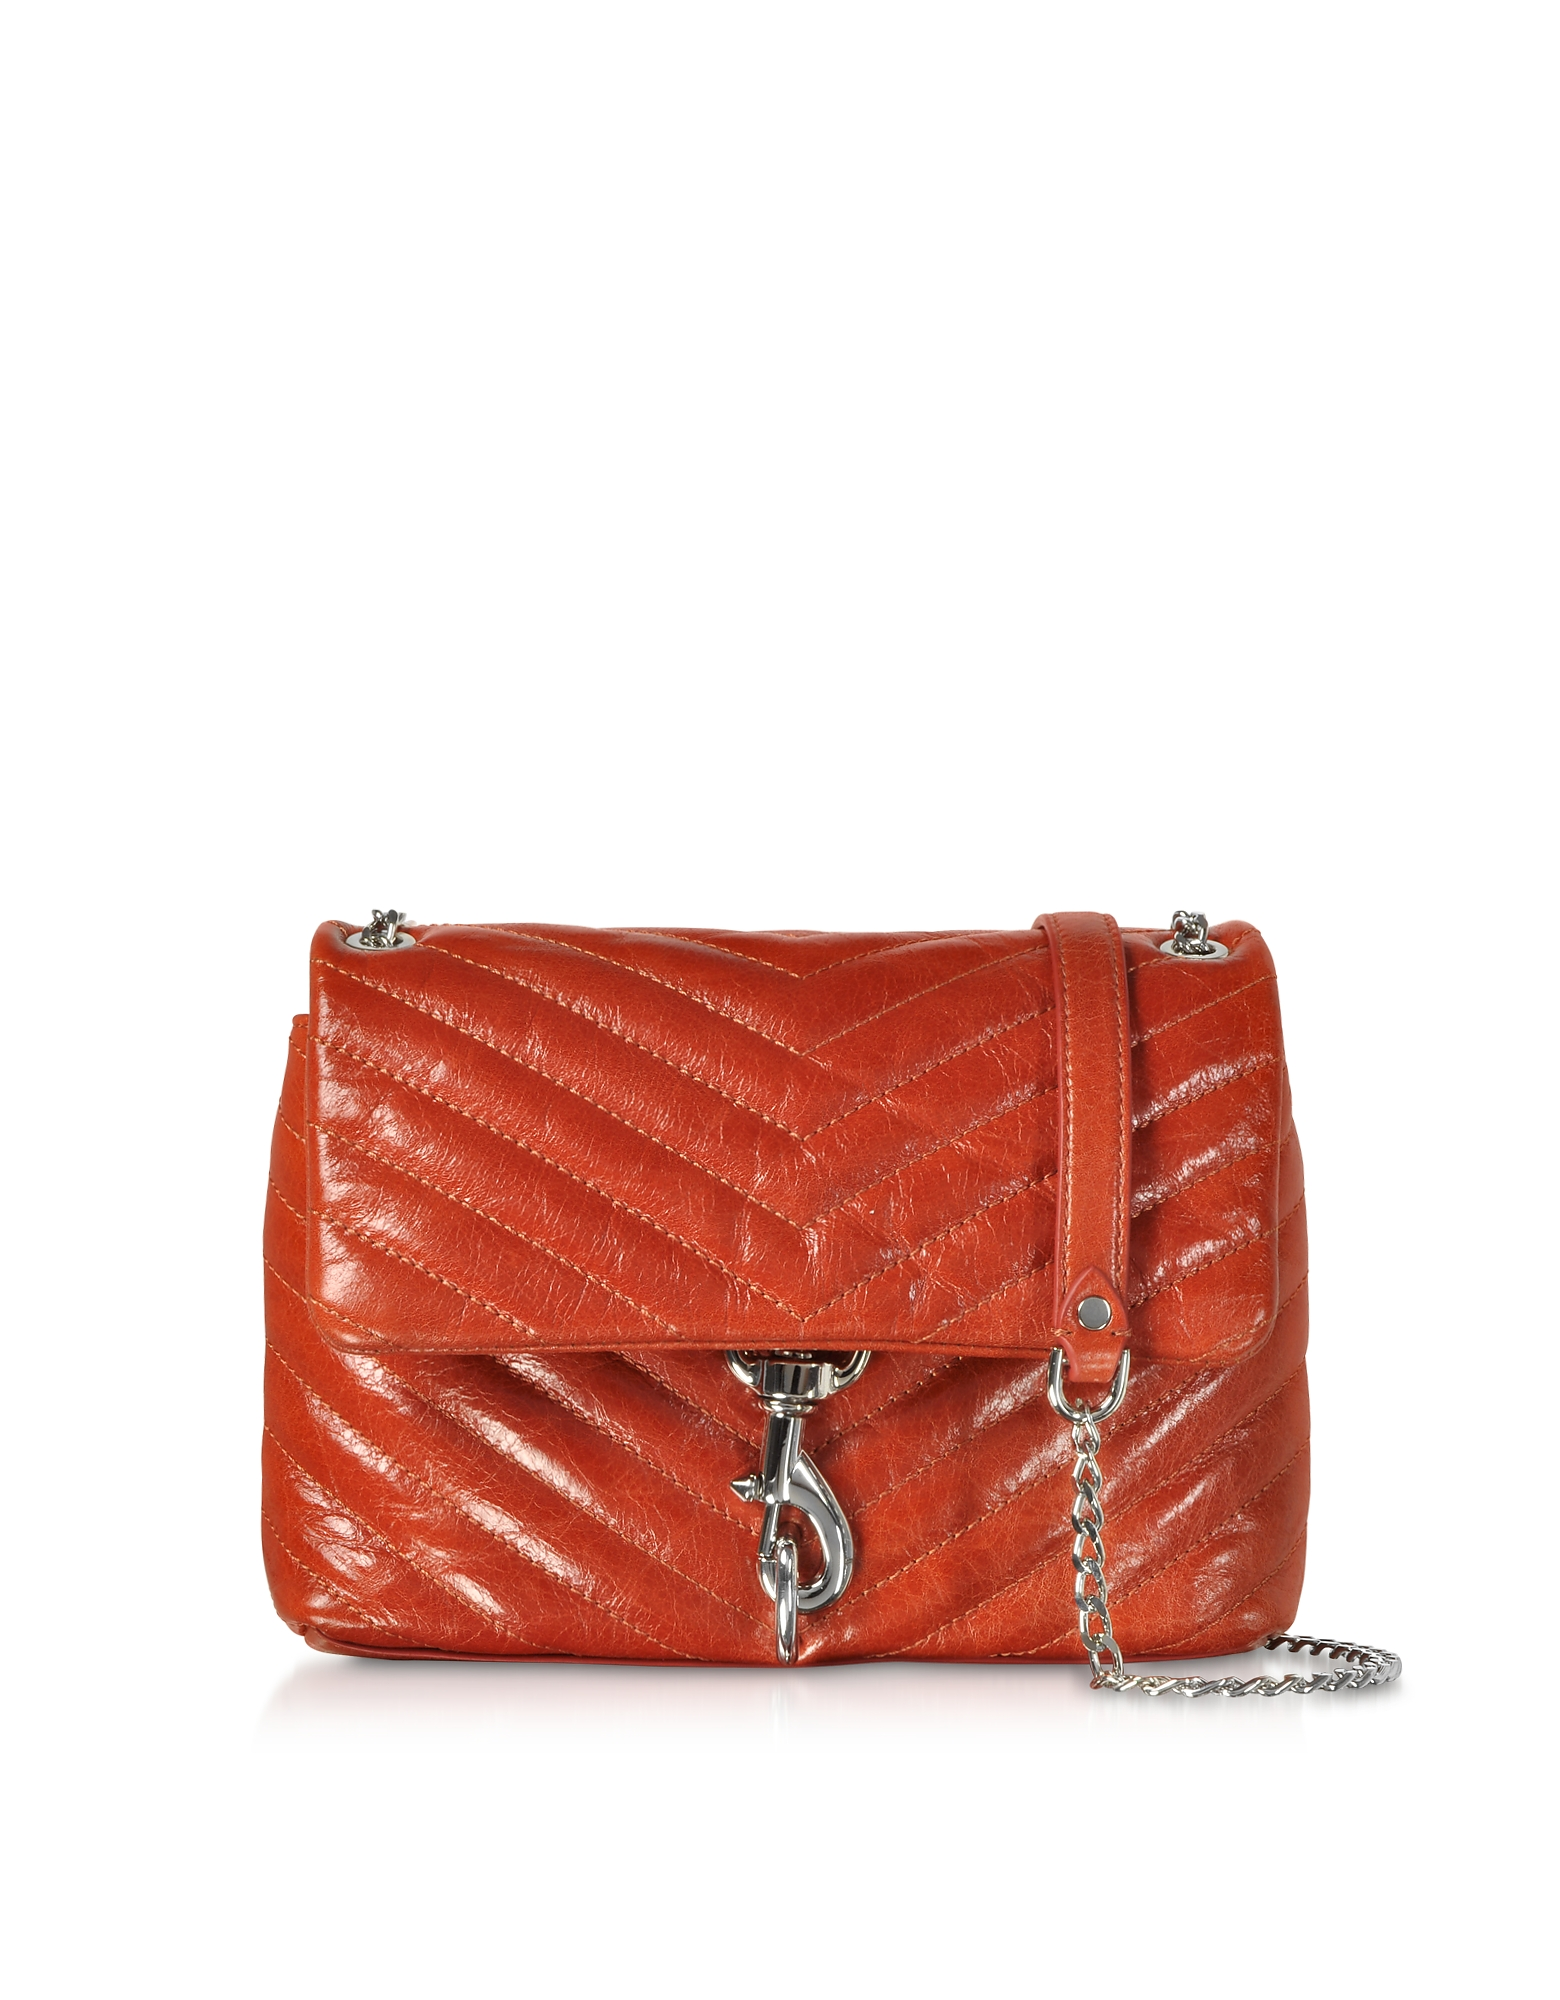 Rebecca Minkoff Handbags, Quilted Leather Edie Xbody Bag